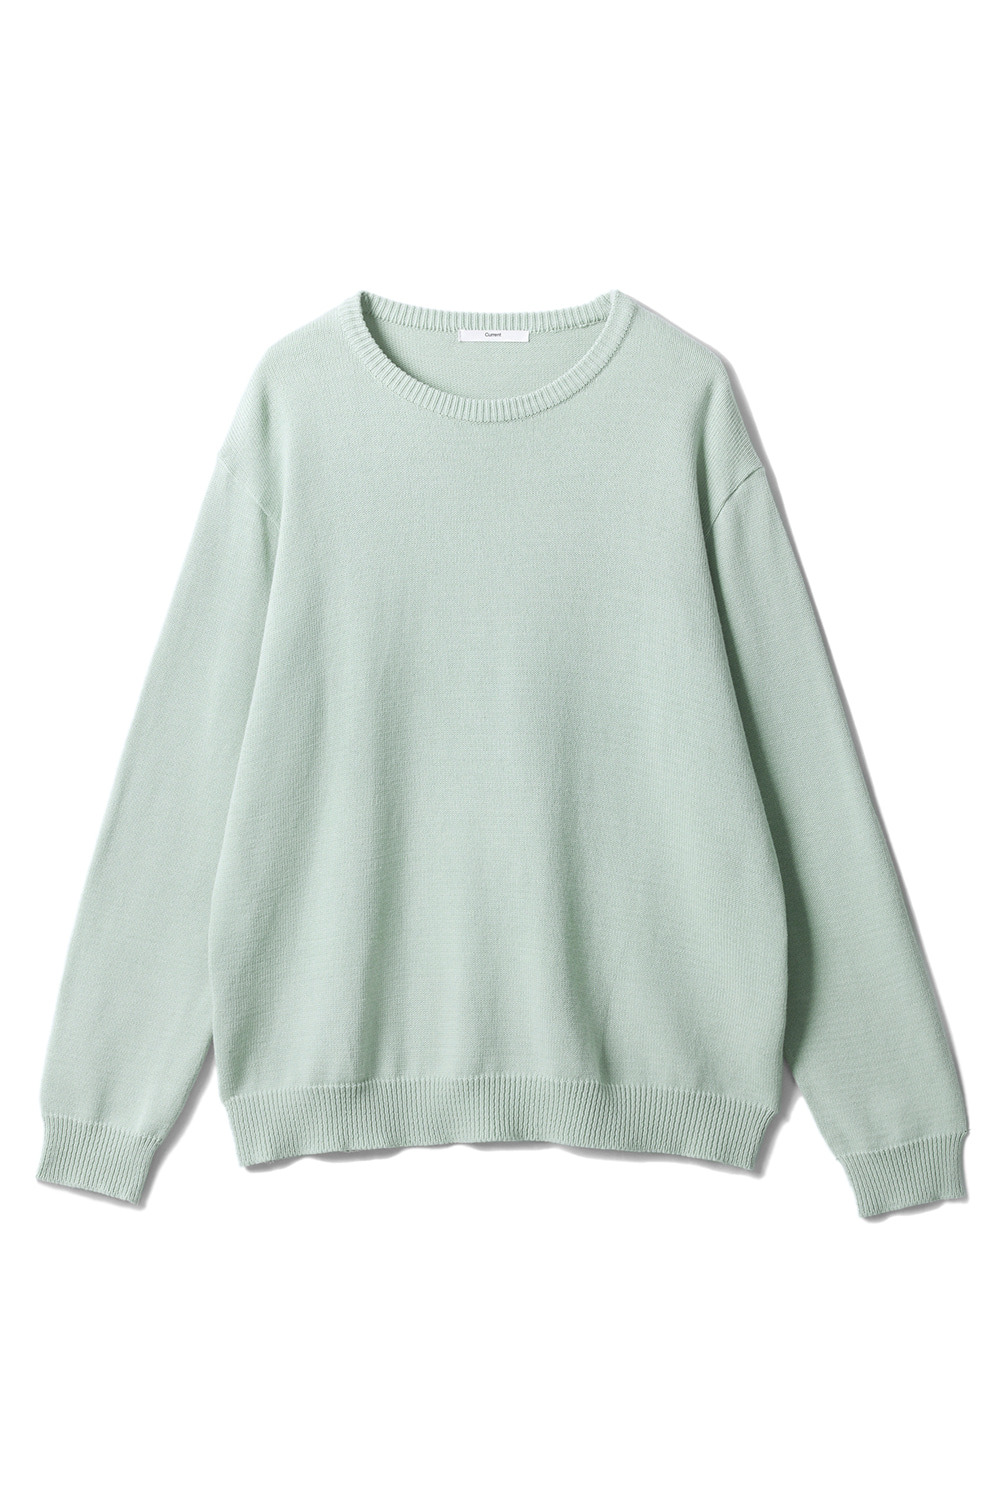 Cotton Round Knit Men [Light Green]